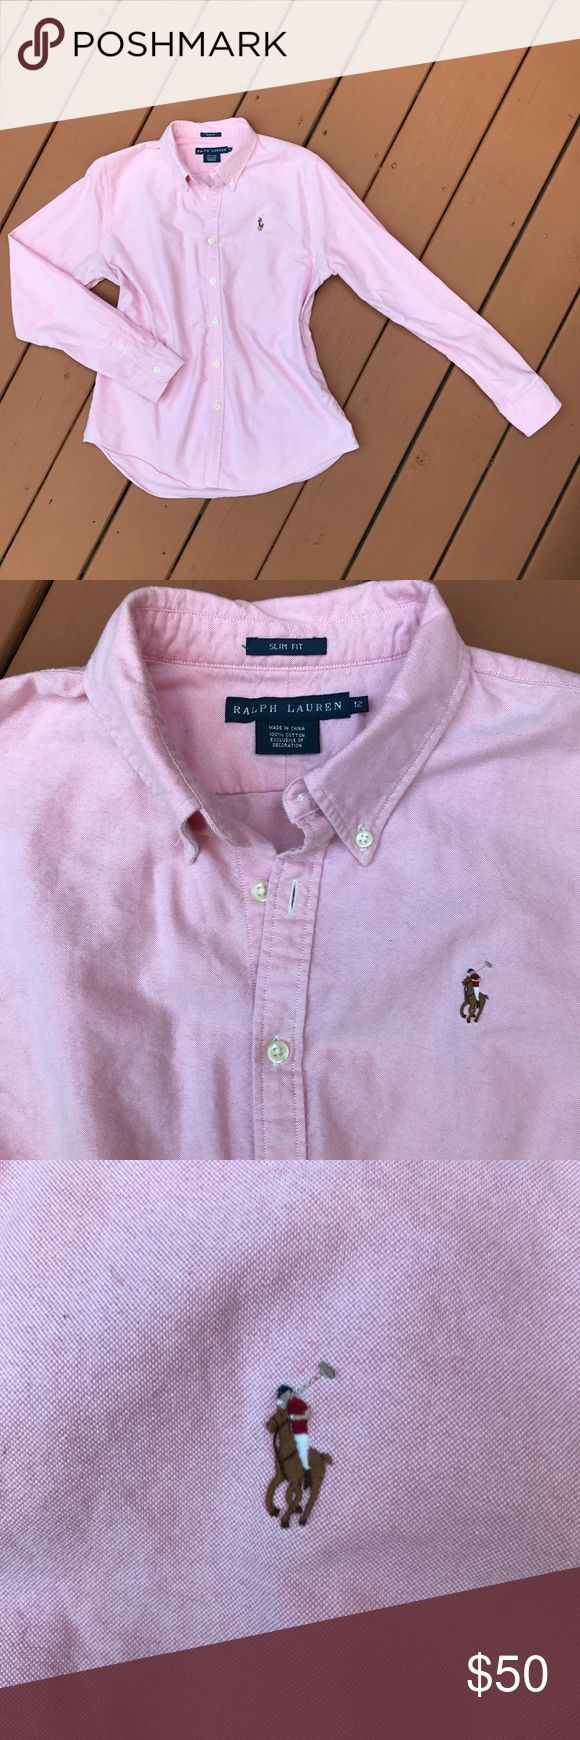 Classic Ralph Lauren Button Down in Pink Sz 12 Pink Classic Ralph Lauren shirt. A washed cotton oxford and a trim fit join forces in this modern take on the classic shirt. Our signature embroidered pony finishes the piece in pure Polo Button Down style.  Custom Fit: a trim silhouette without stretch. Button-down point collar. Buttoned placket. Long sleeves with buttoned barrel cuffs. Back yoke. Shaping darts at the back. EUC Multicolored signature embroidered pony at the left chest. Ralph…